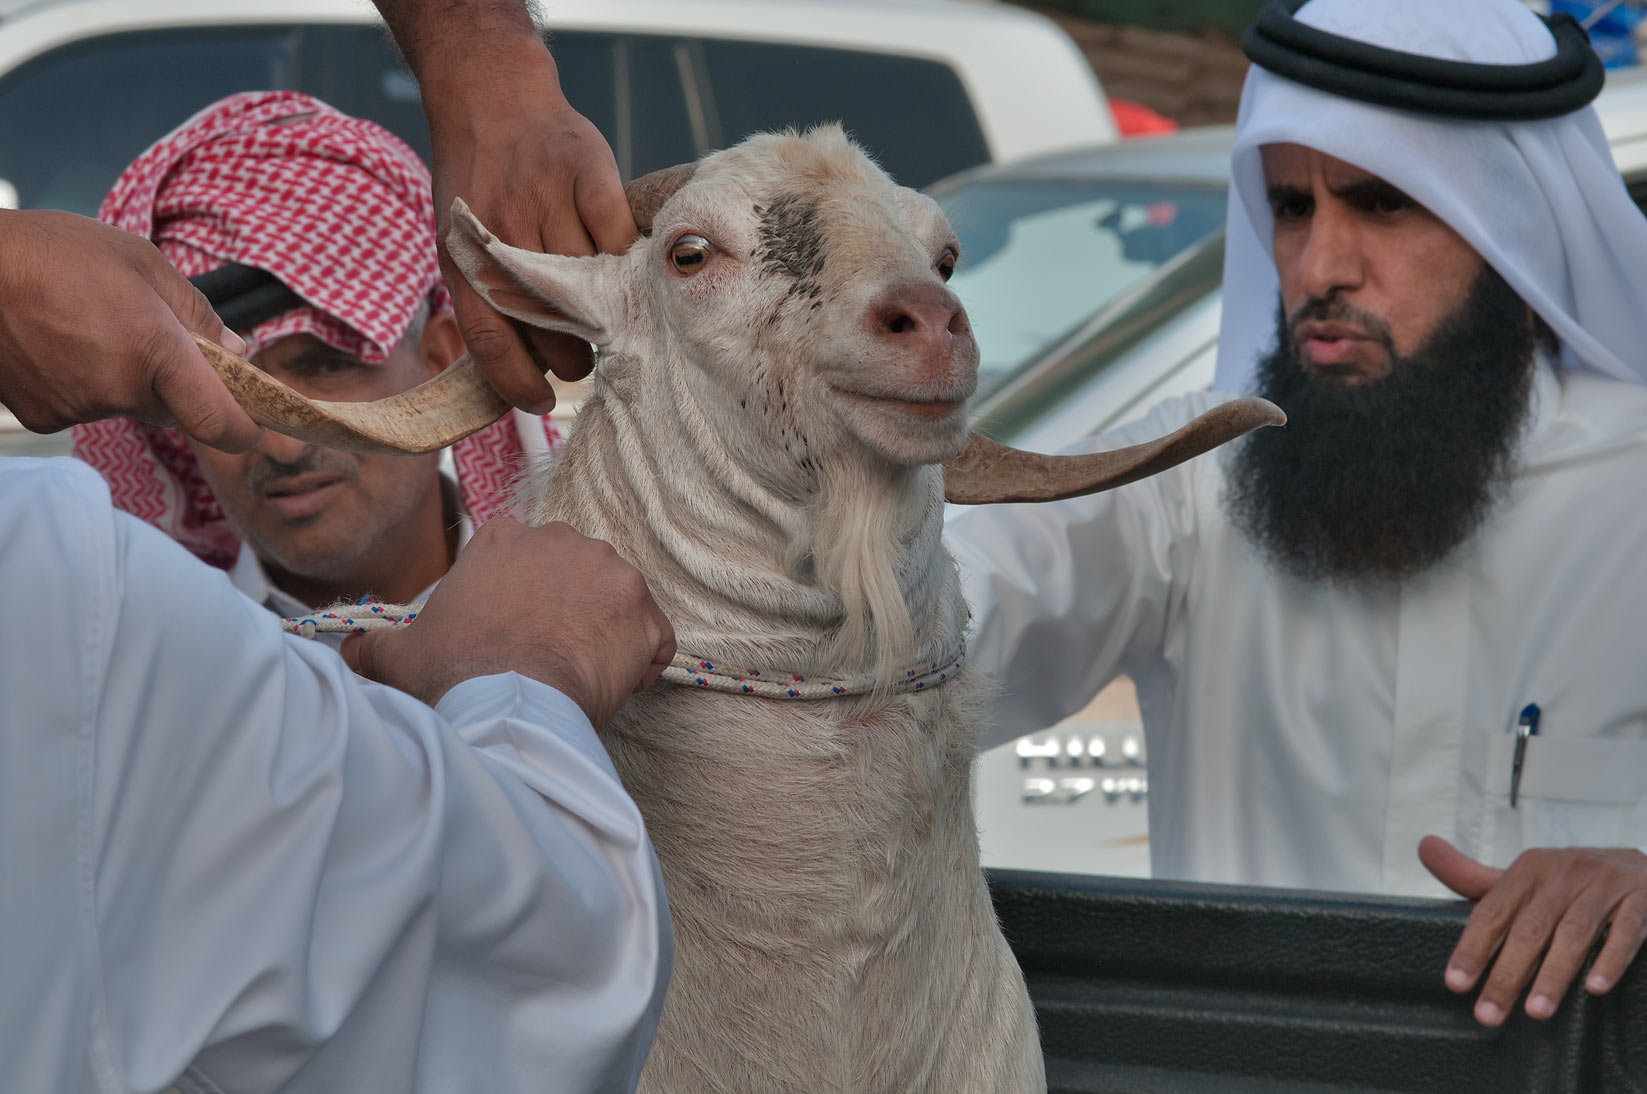 Buying a white goat in Sheep Market, Wholesale Market area. Doha, Qatar